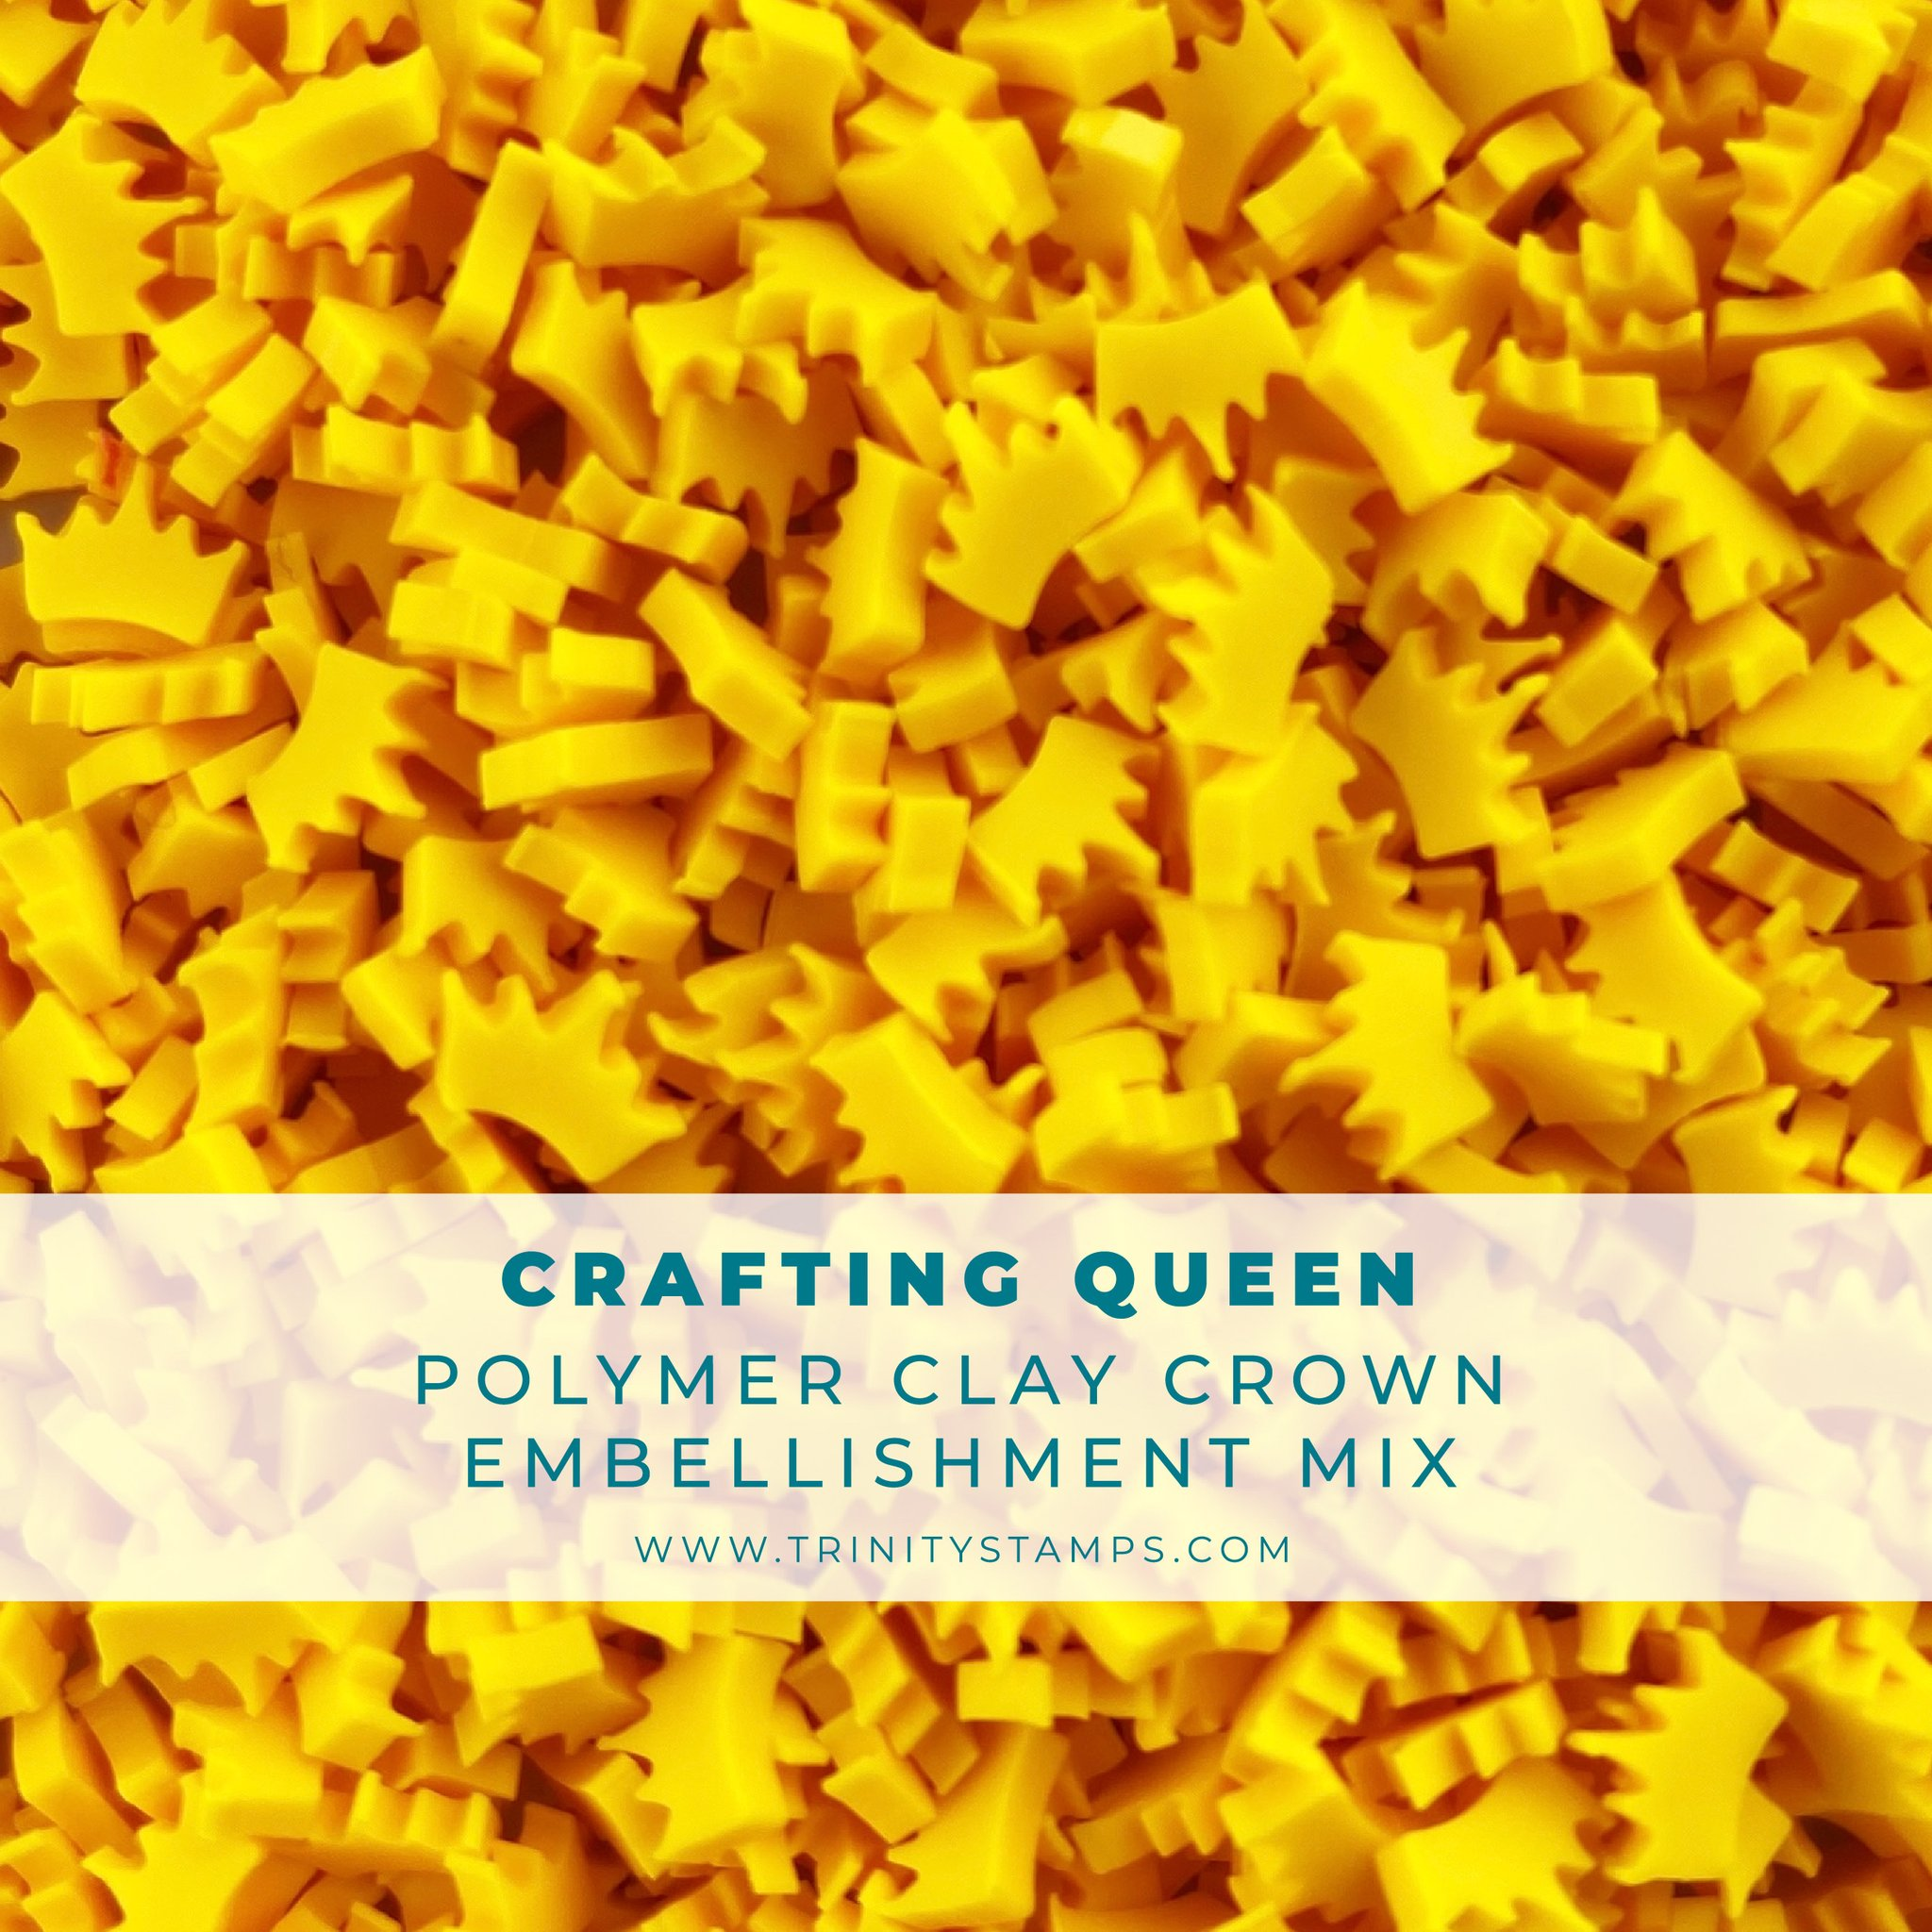 *NEW* - Trinity Stamps - Crafting Queen Clay Crown Embellishment Mix